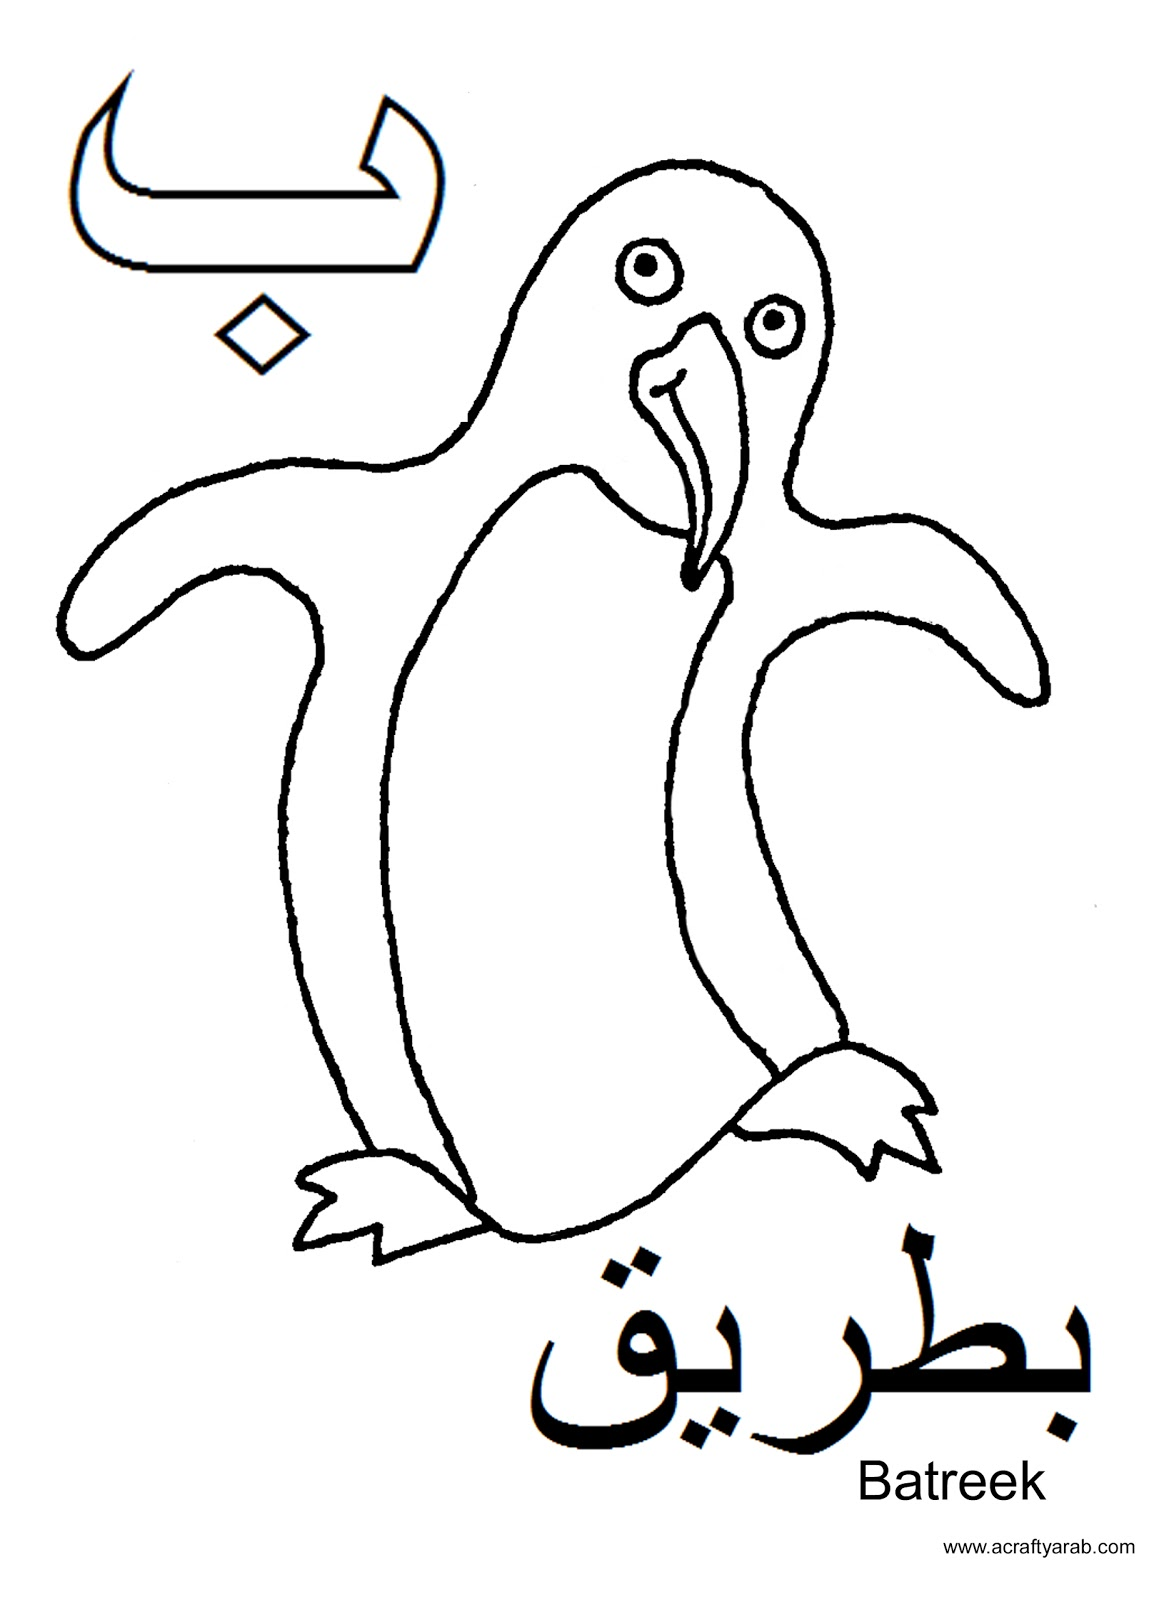 a crafty arab arabic alphabet coloring pages baa is for batreek. Black Bedroom Furniture Sets. Home Design Ideas